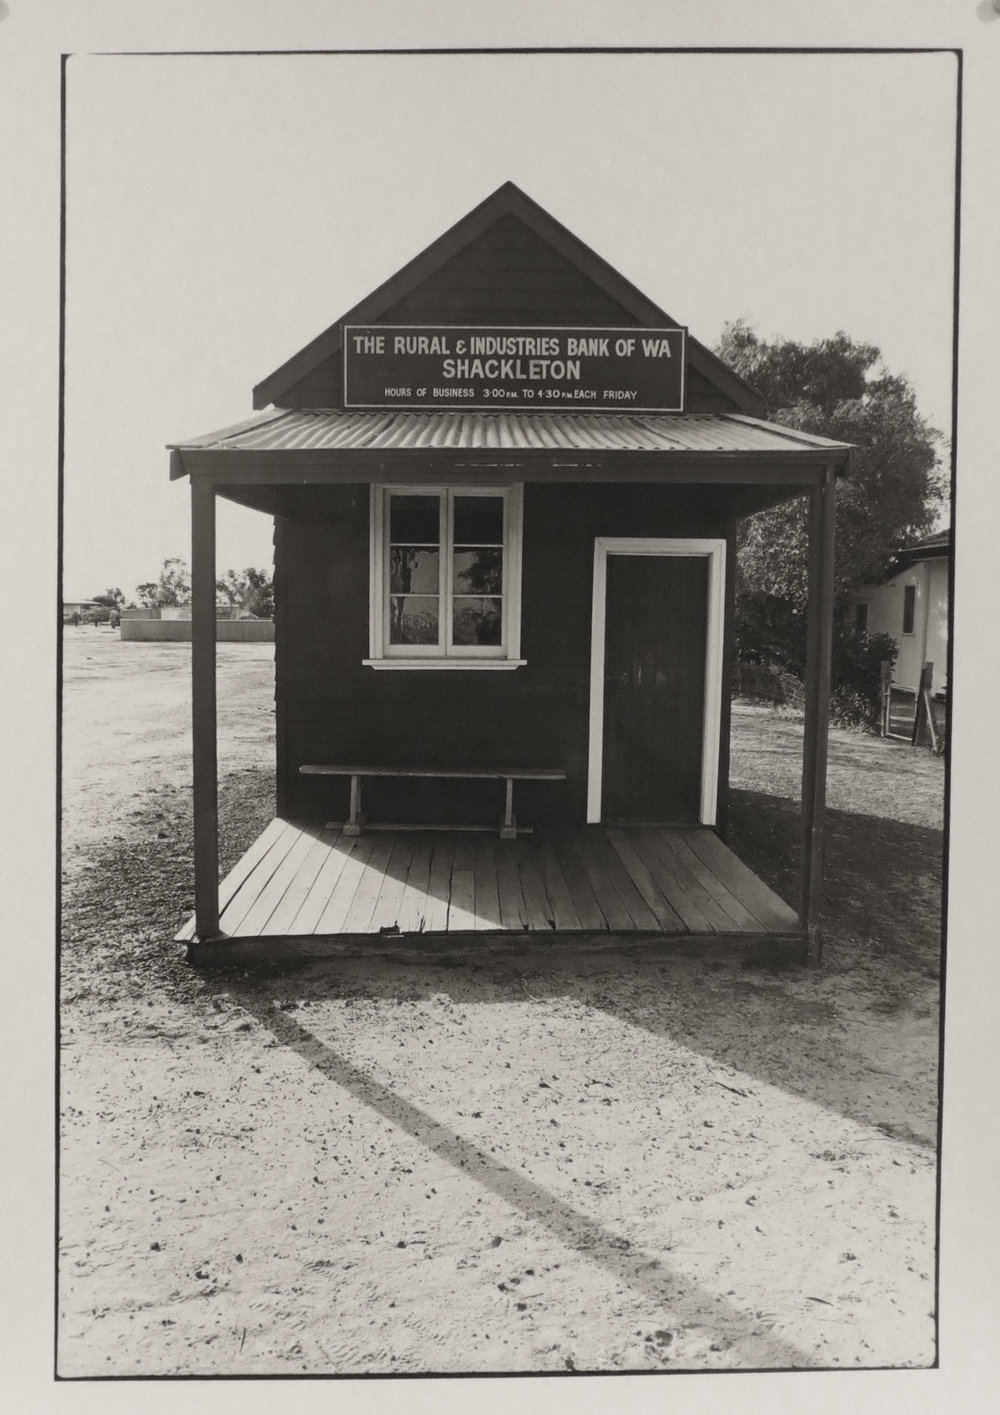 43. Richard Woldendorp, 'Rural & Industries Bank, Shackleton WA', BW305, taken and printed in c.1963, Vintage Print